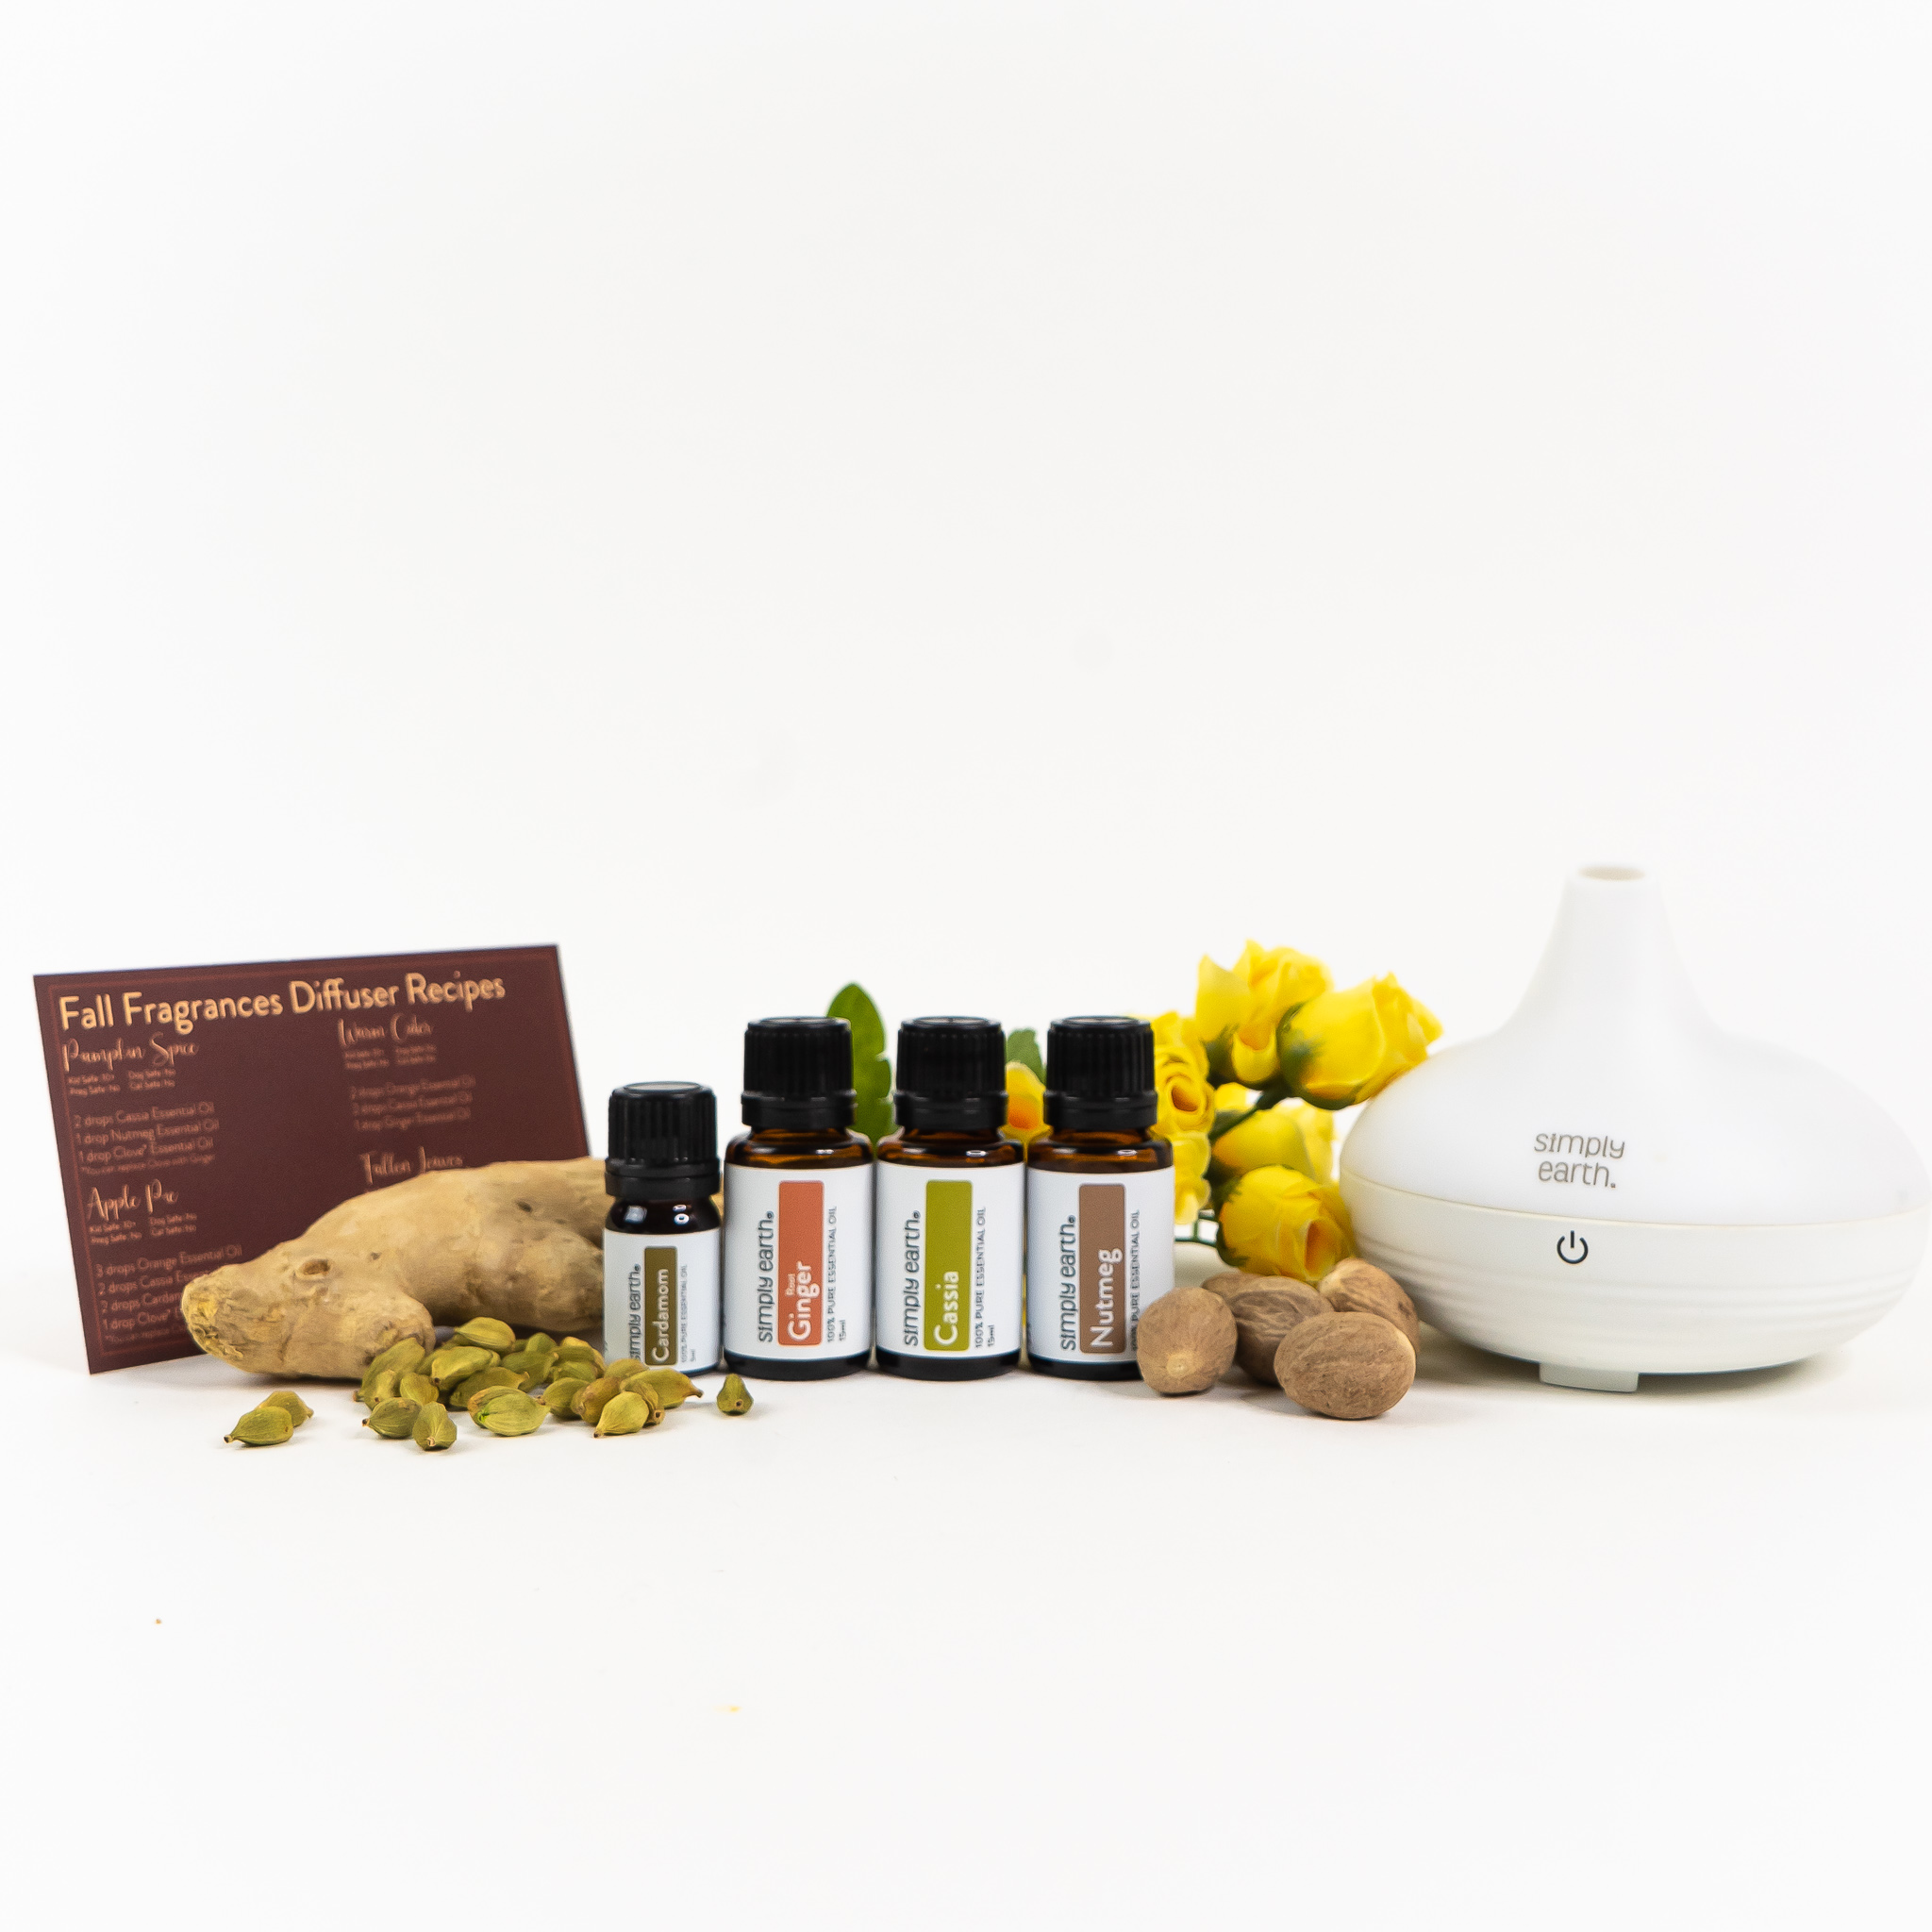 Fall Fragrance Diffuser Set Set: Deluxe (with diffuser)